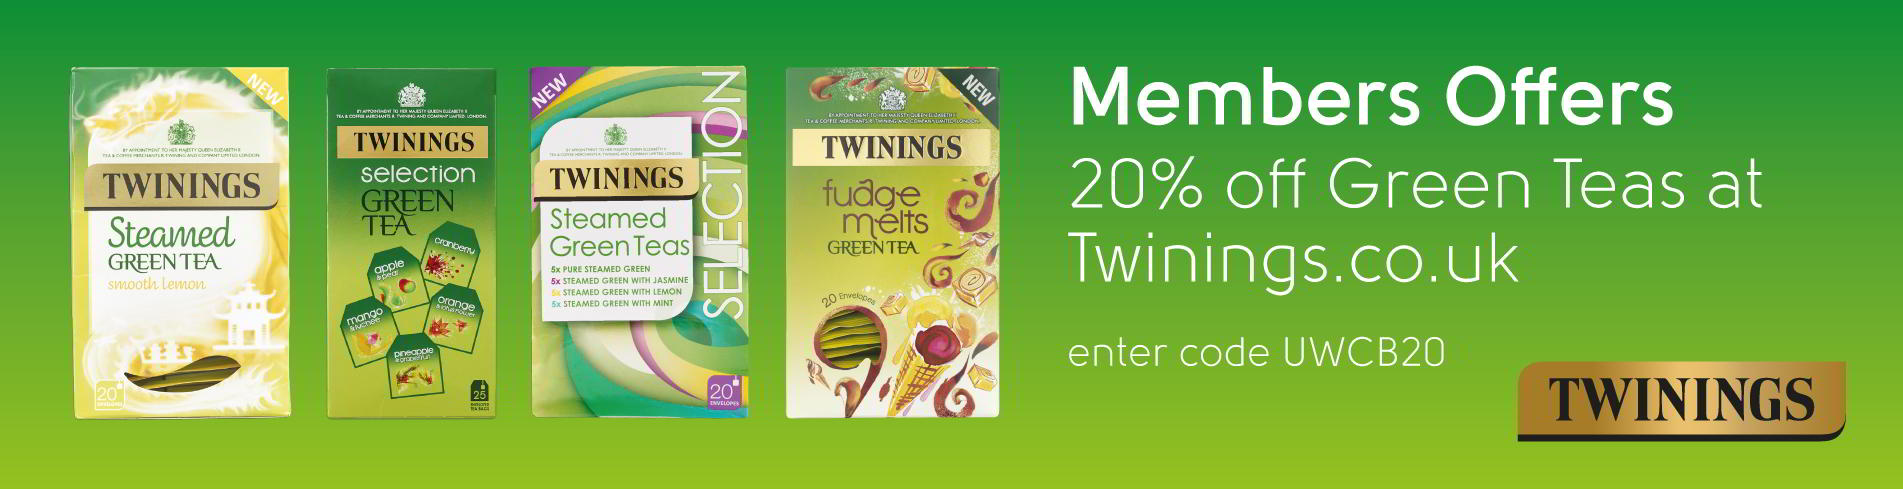 Twinings UWCB members offer. 20% off green teas at twinings.co.uk using code UWCB20